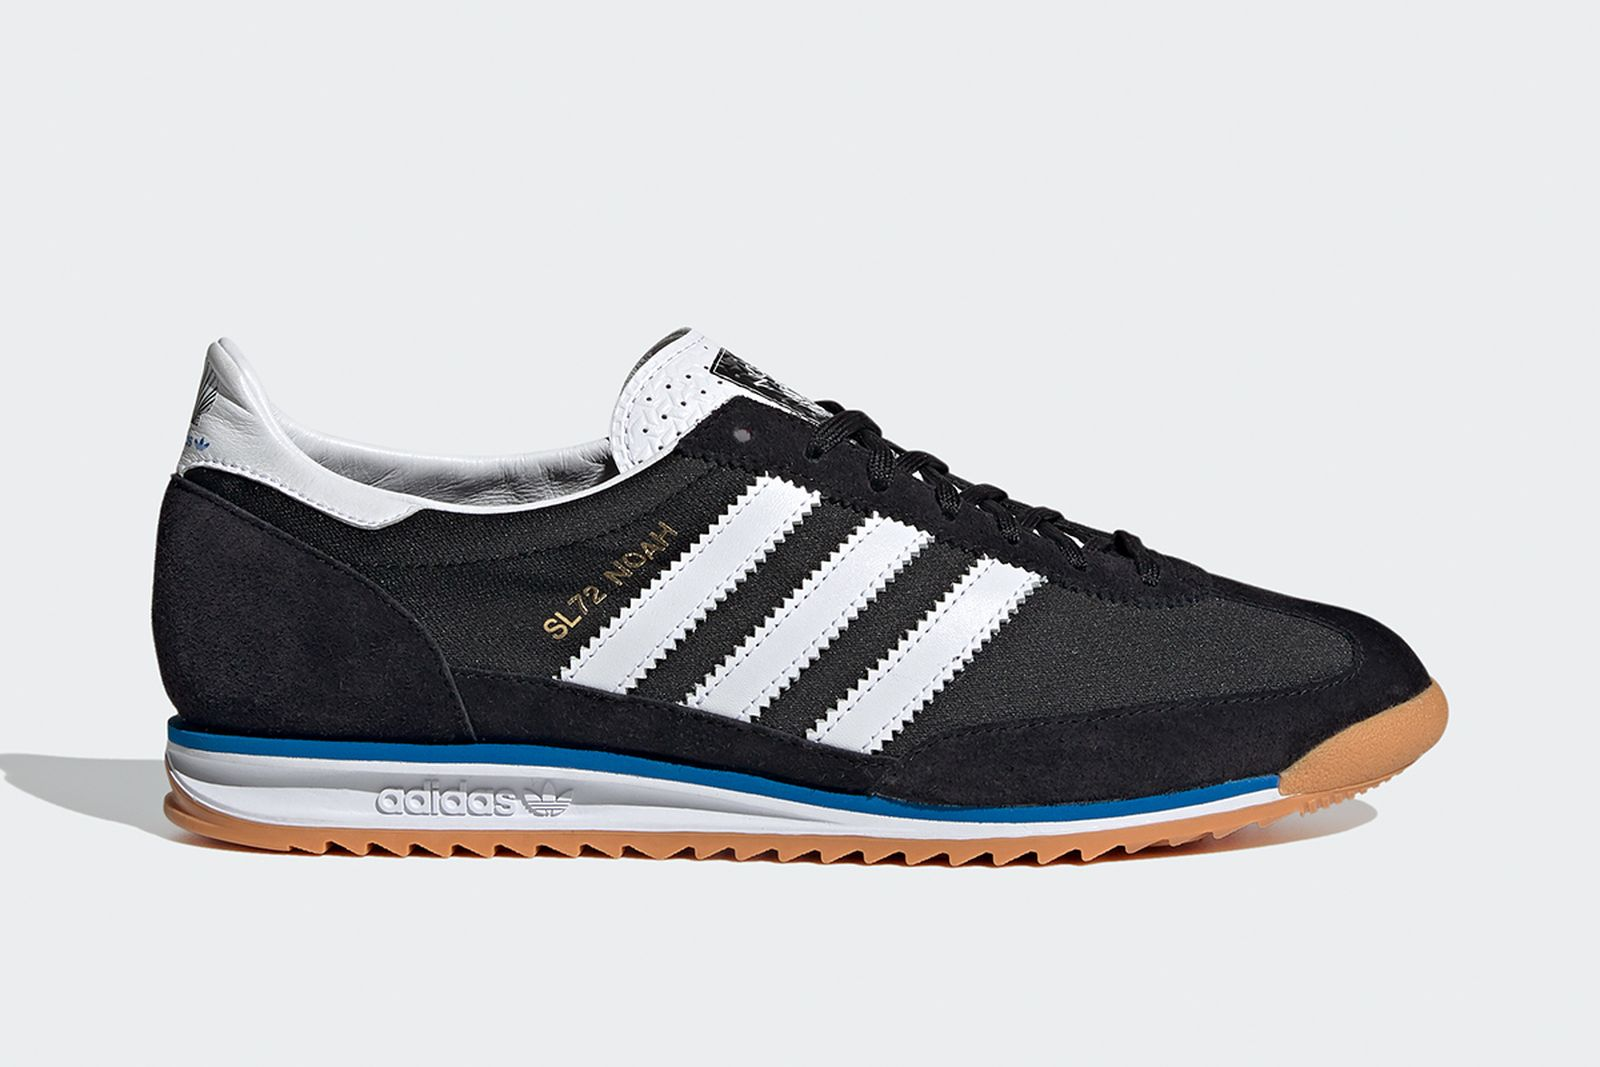 noah-adidas-fw20-collection-release-info-product-03